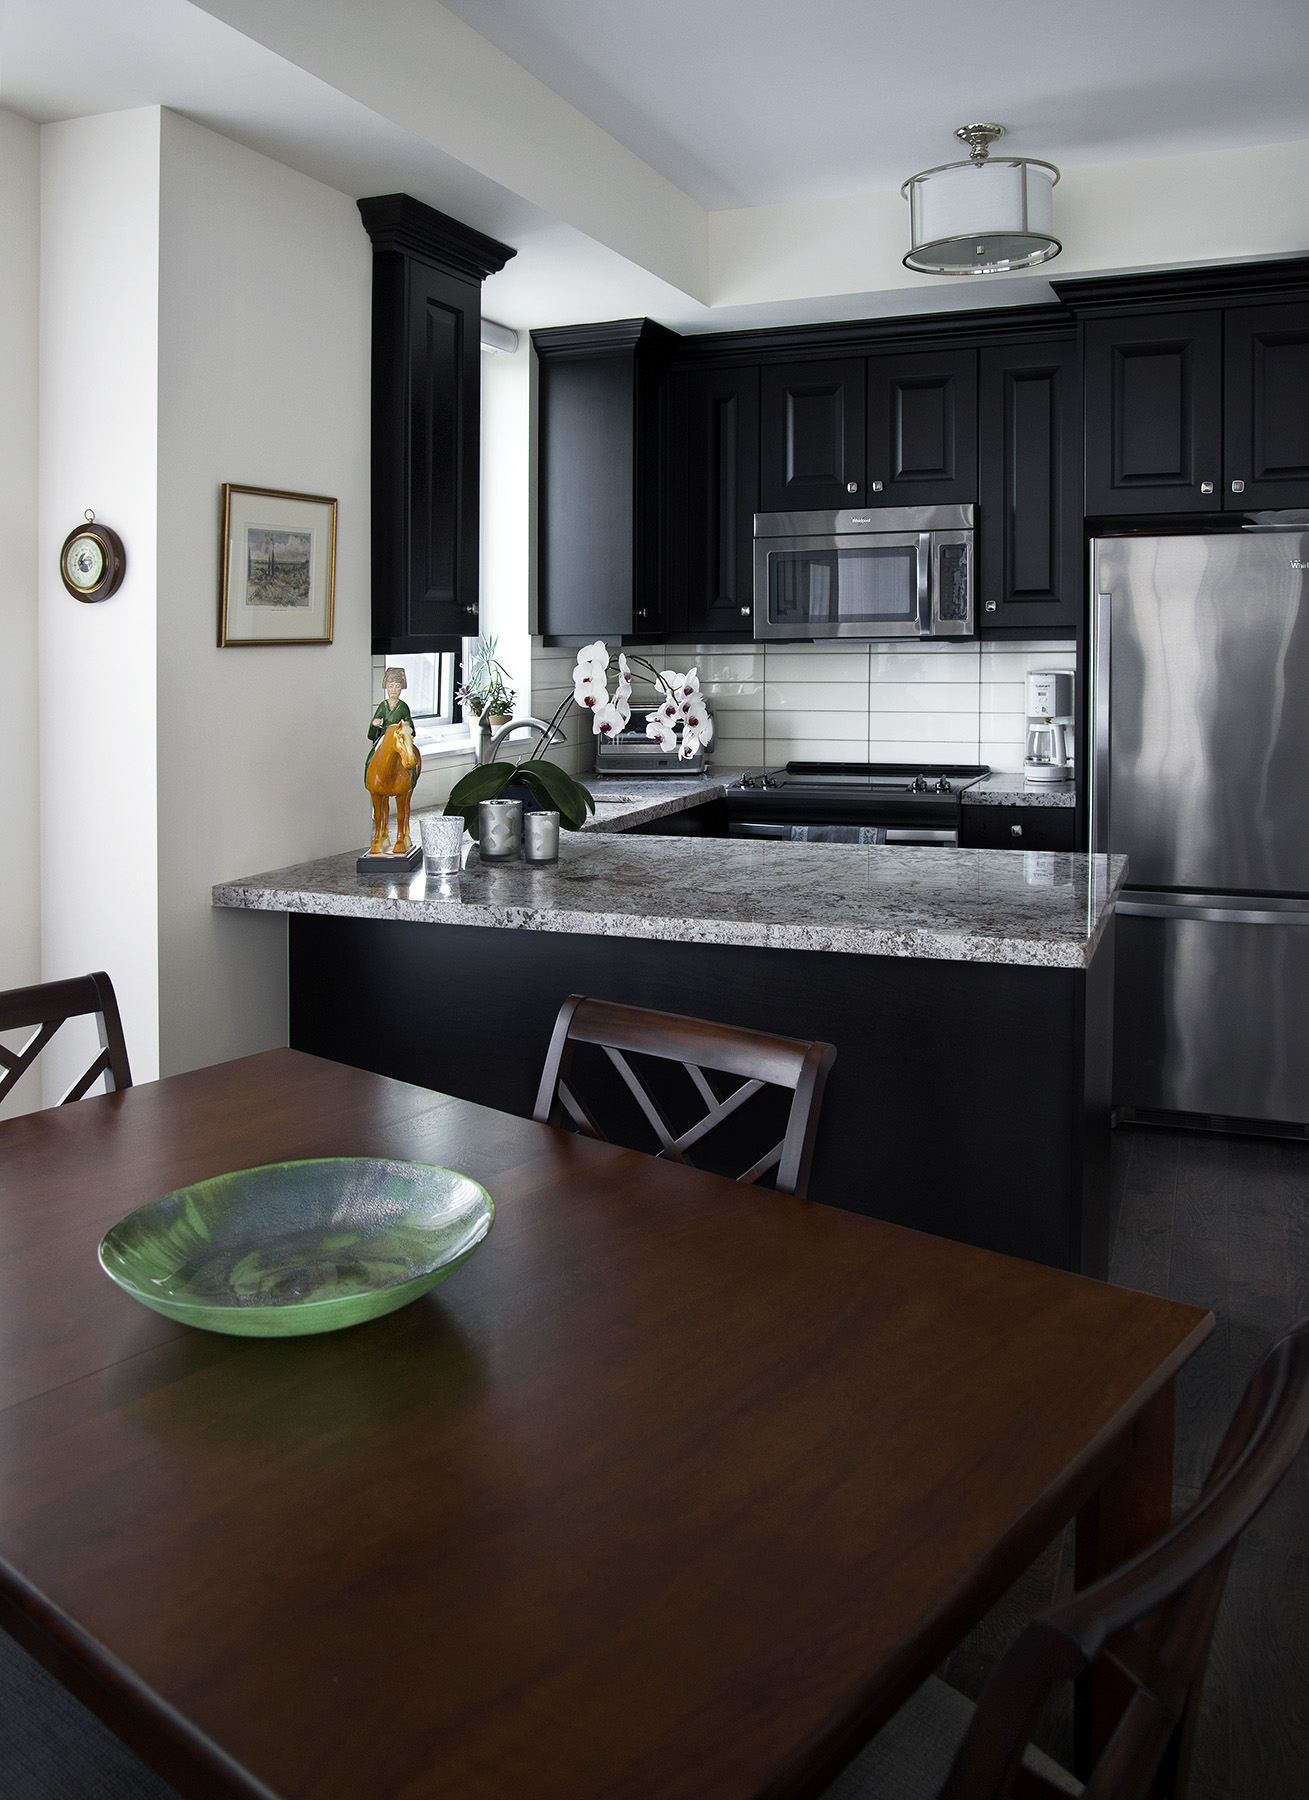 homefront redesigns project Old Mill Condo kitchen, Kingsway